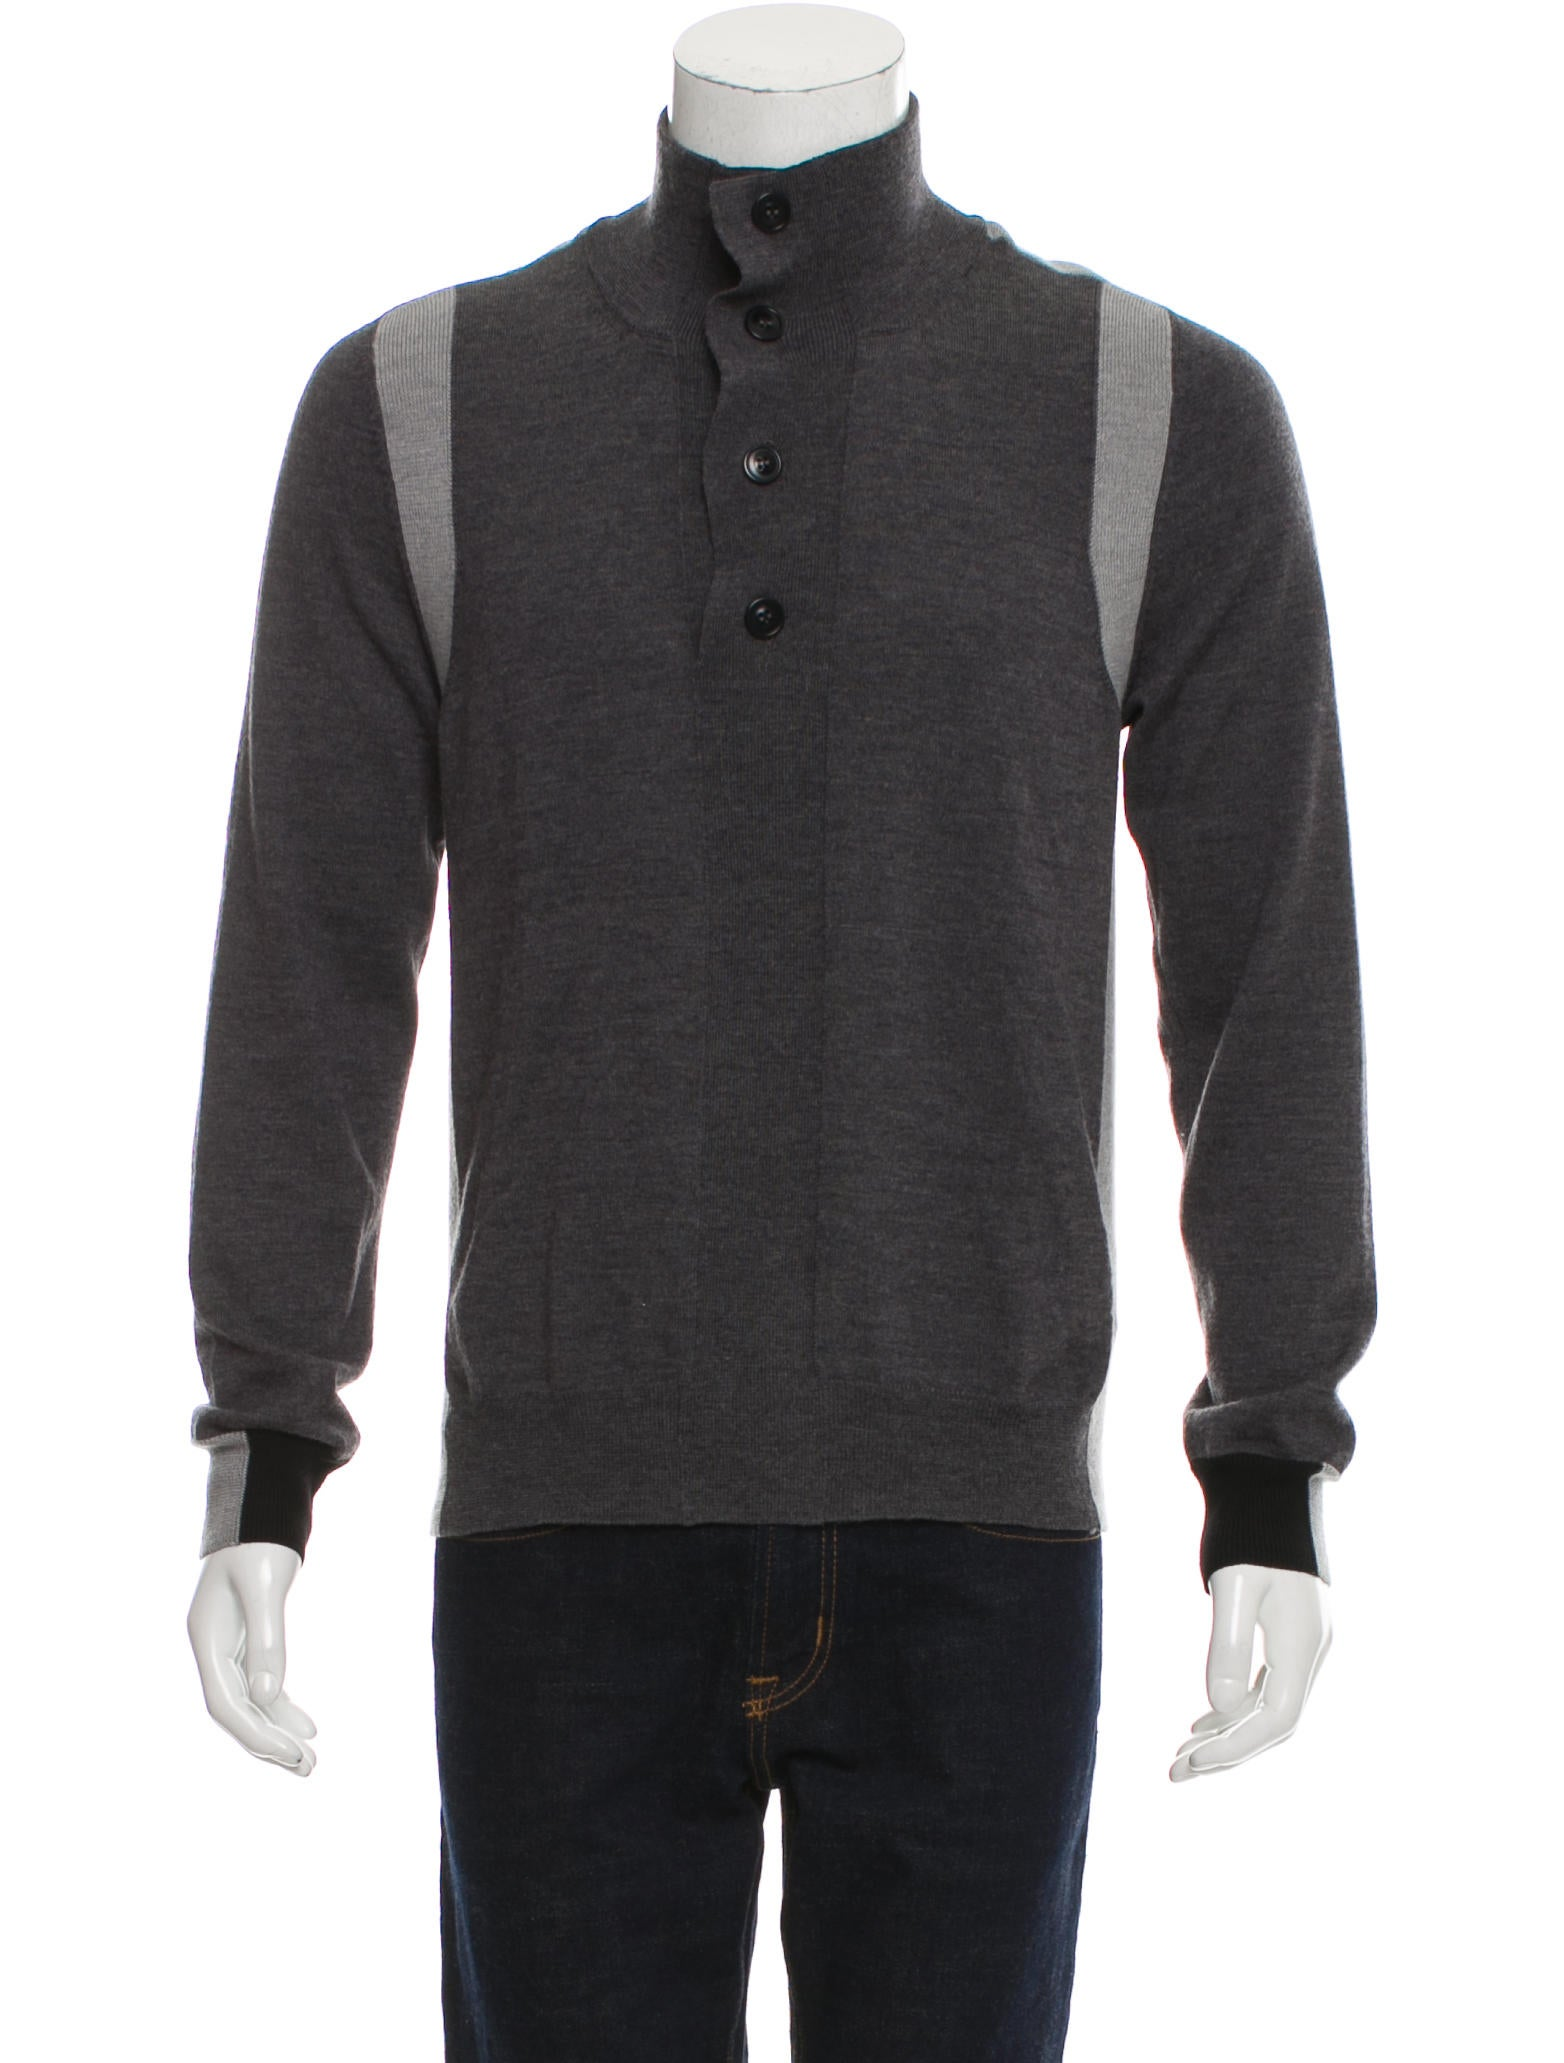 Maison Margiela Wool Half-Button Sweater - Clothing - MAI30860 | The RealReal